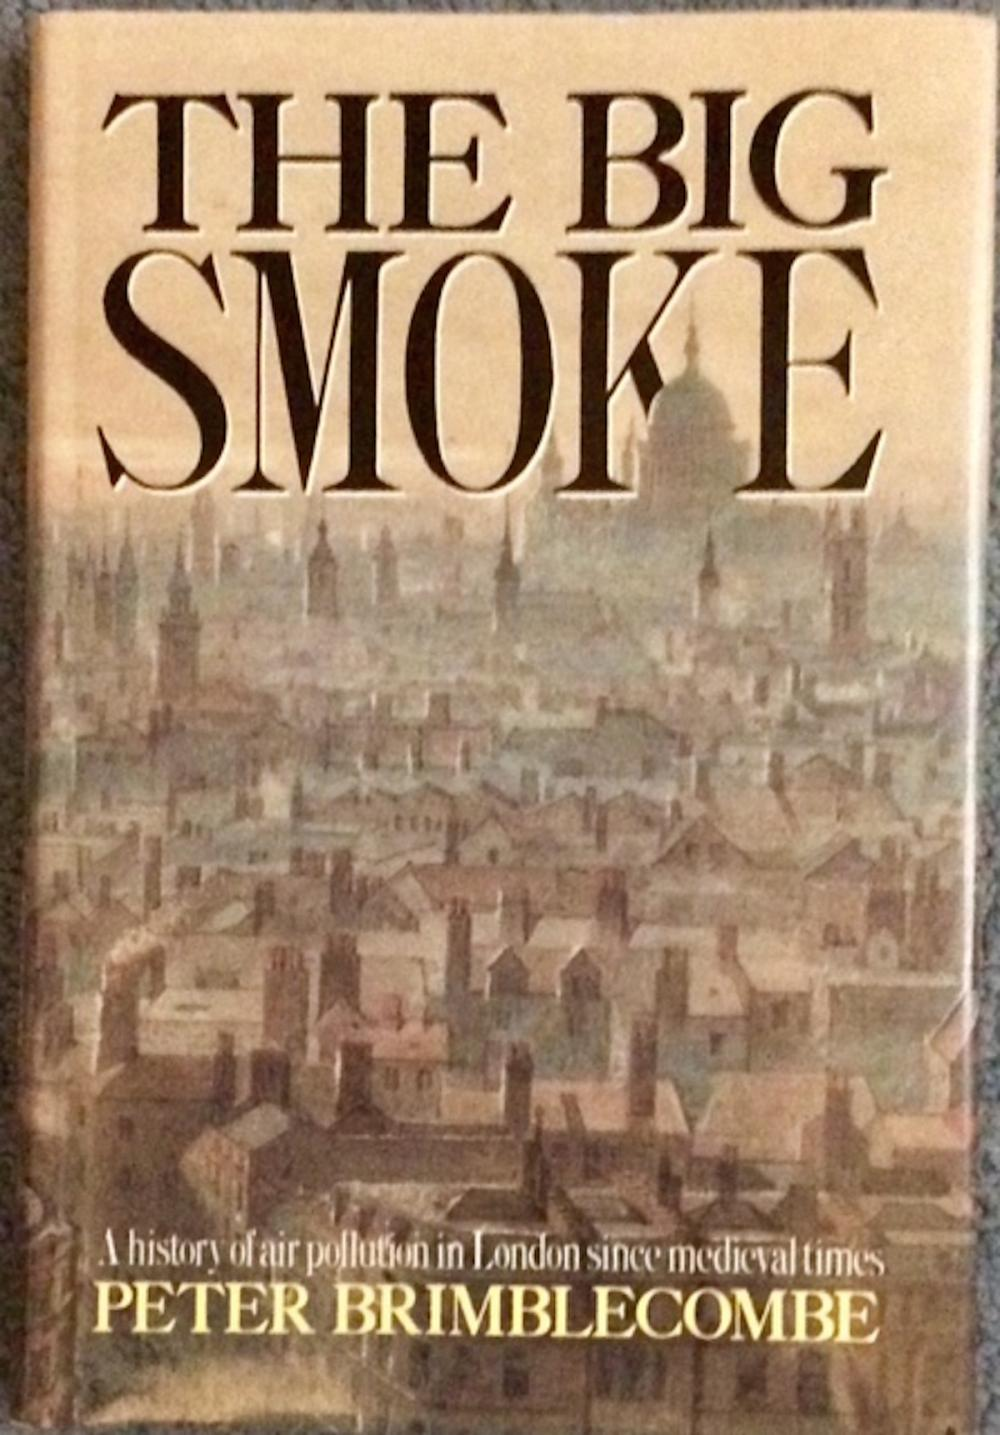 """The Big Smoke"" by Peter Brimblecombe VINTAGE 1987 Hardcover London Air Pollution History 1st Edition 1st Printing Review Copy In DJ"